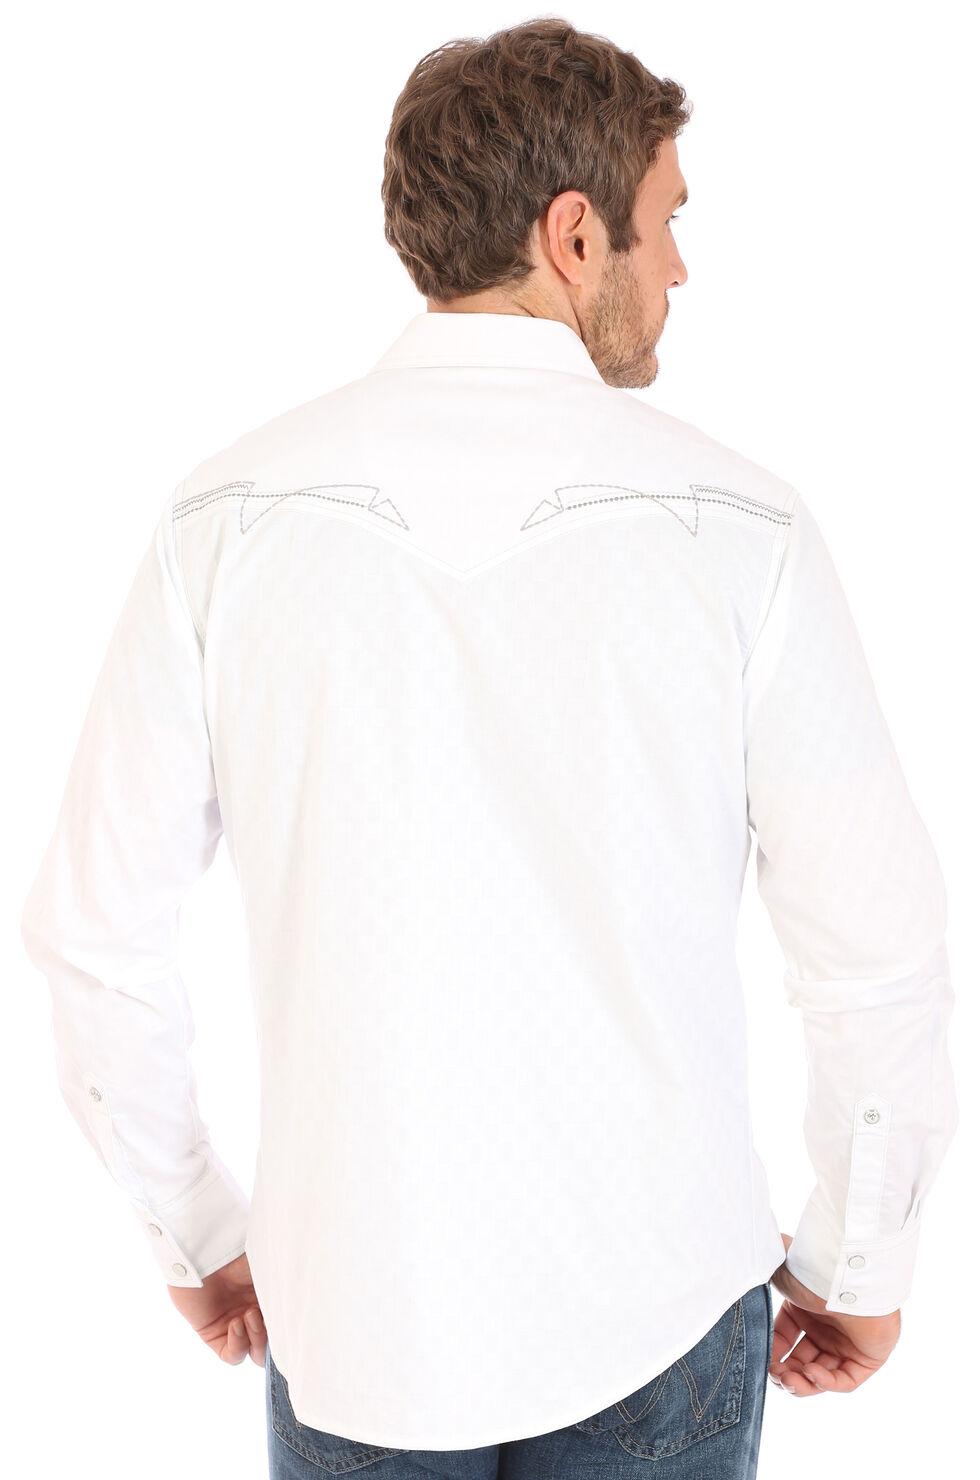 Wrangler Men's Rock 47 White Embroidered Stitch Long Sleeve Snap Shirt - Big & Tall, White, hi-res